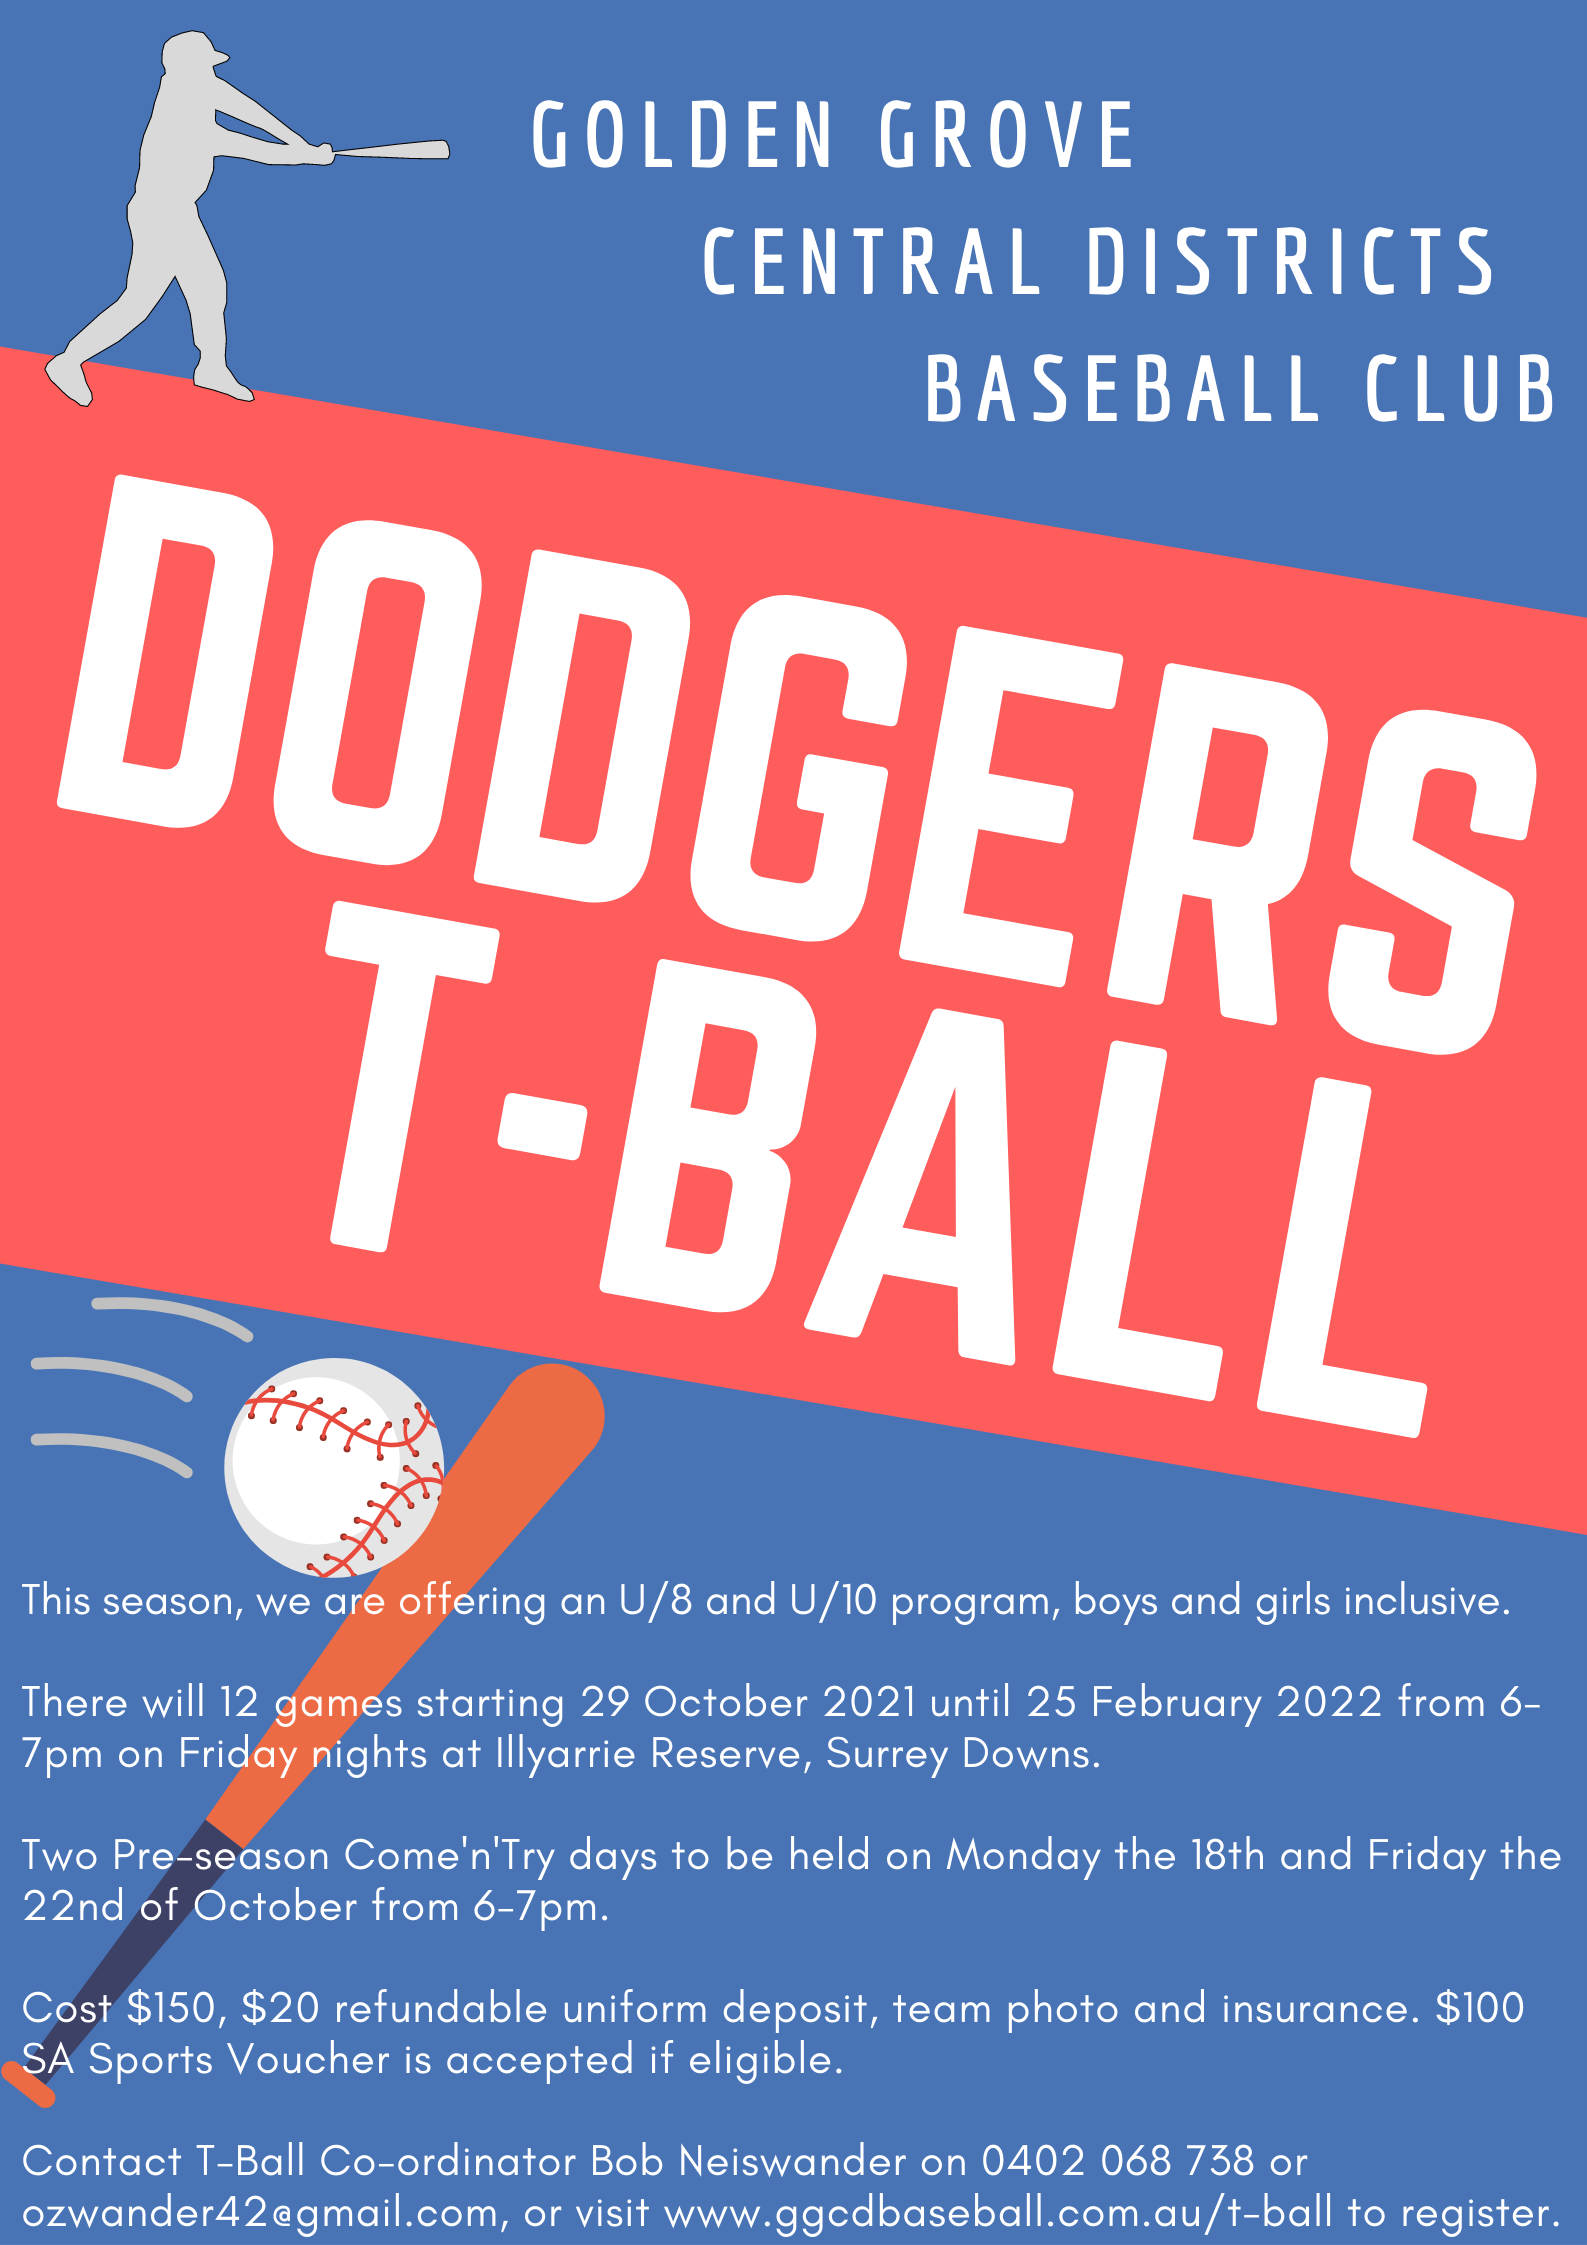 Dodgers T-Ball 2021 from 29 October 2021 to 25 February 2022